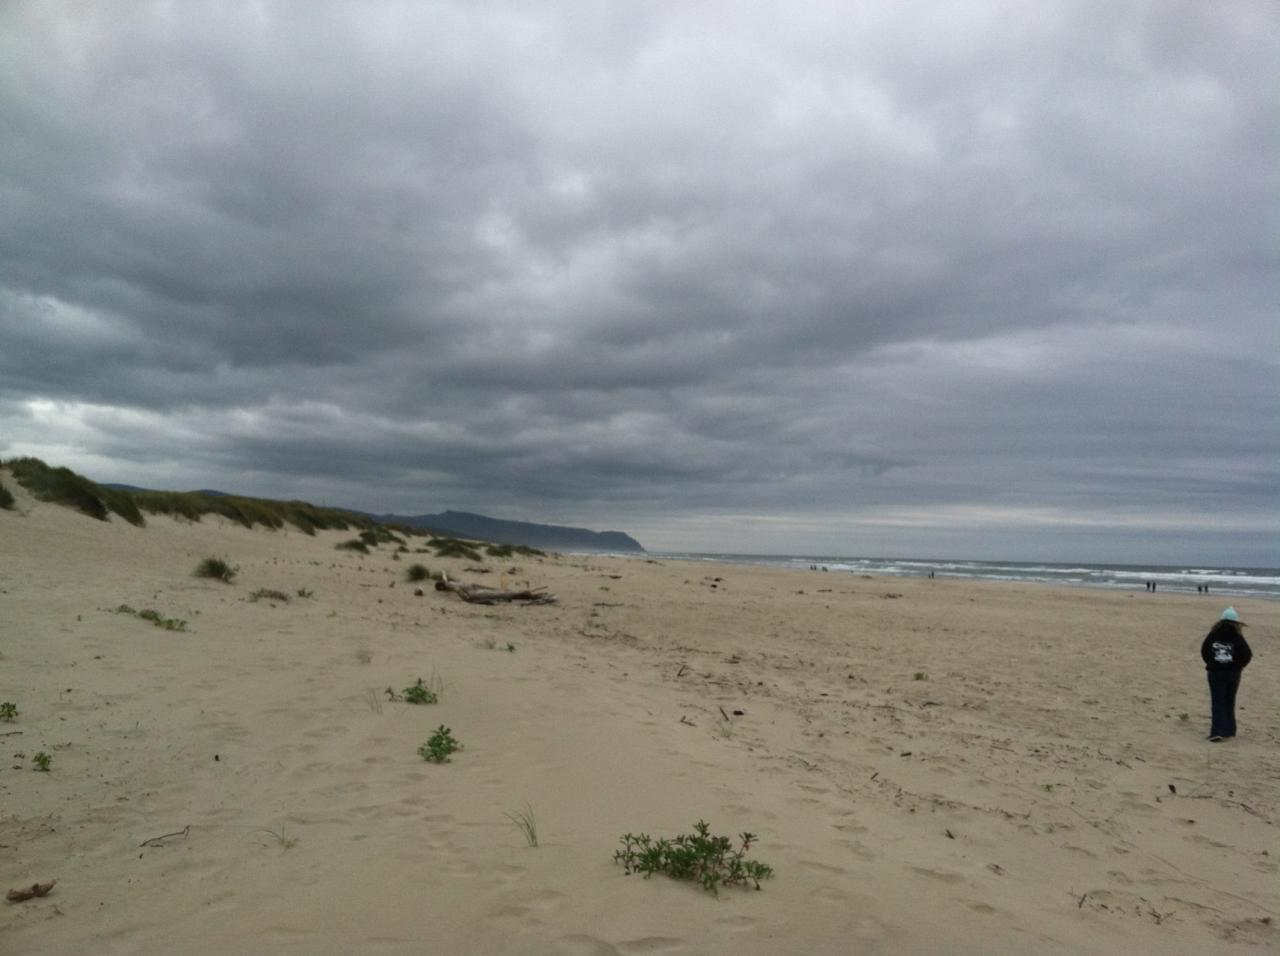 Warm, but cloudy, overcast day on the Bayshore near Waldport, OR.